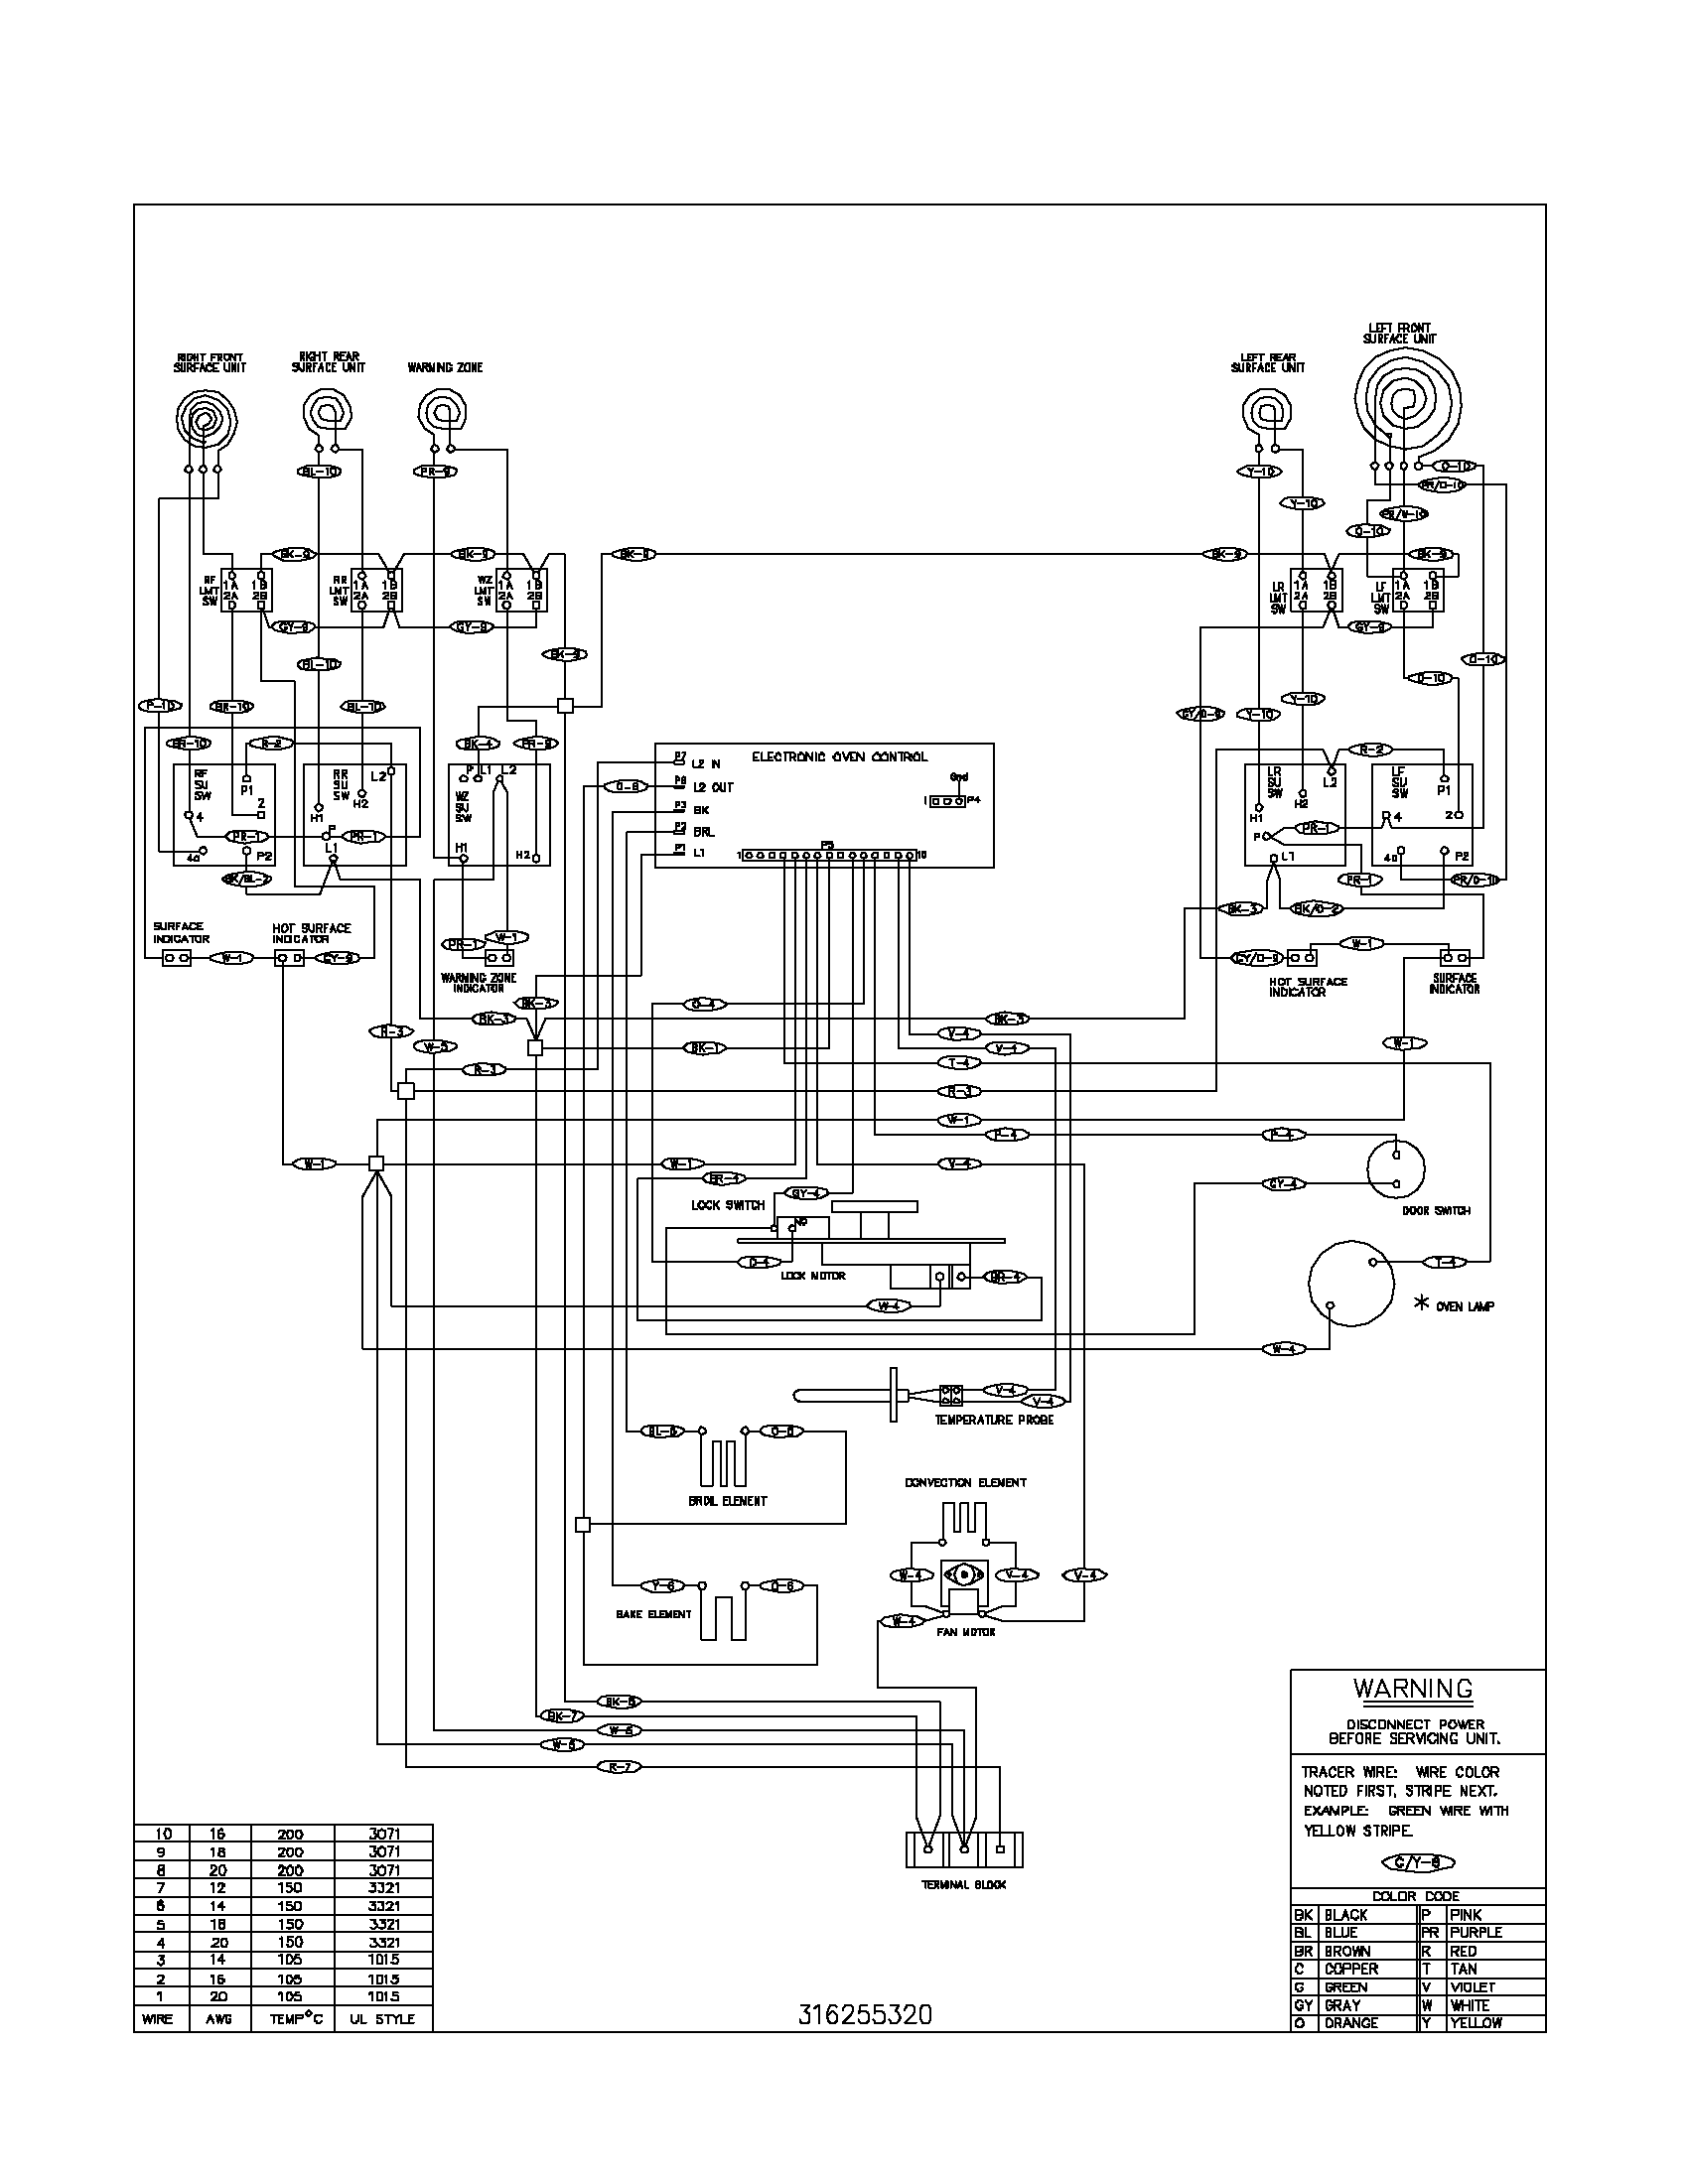 New Wiring Diagram Ice Maker Diagrams Digramssample Diagramimages Wiringdiagramsample Wiringdiagram Check Electric Stove Electrical Diagram Electric Oven